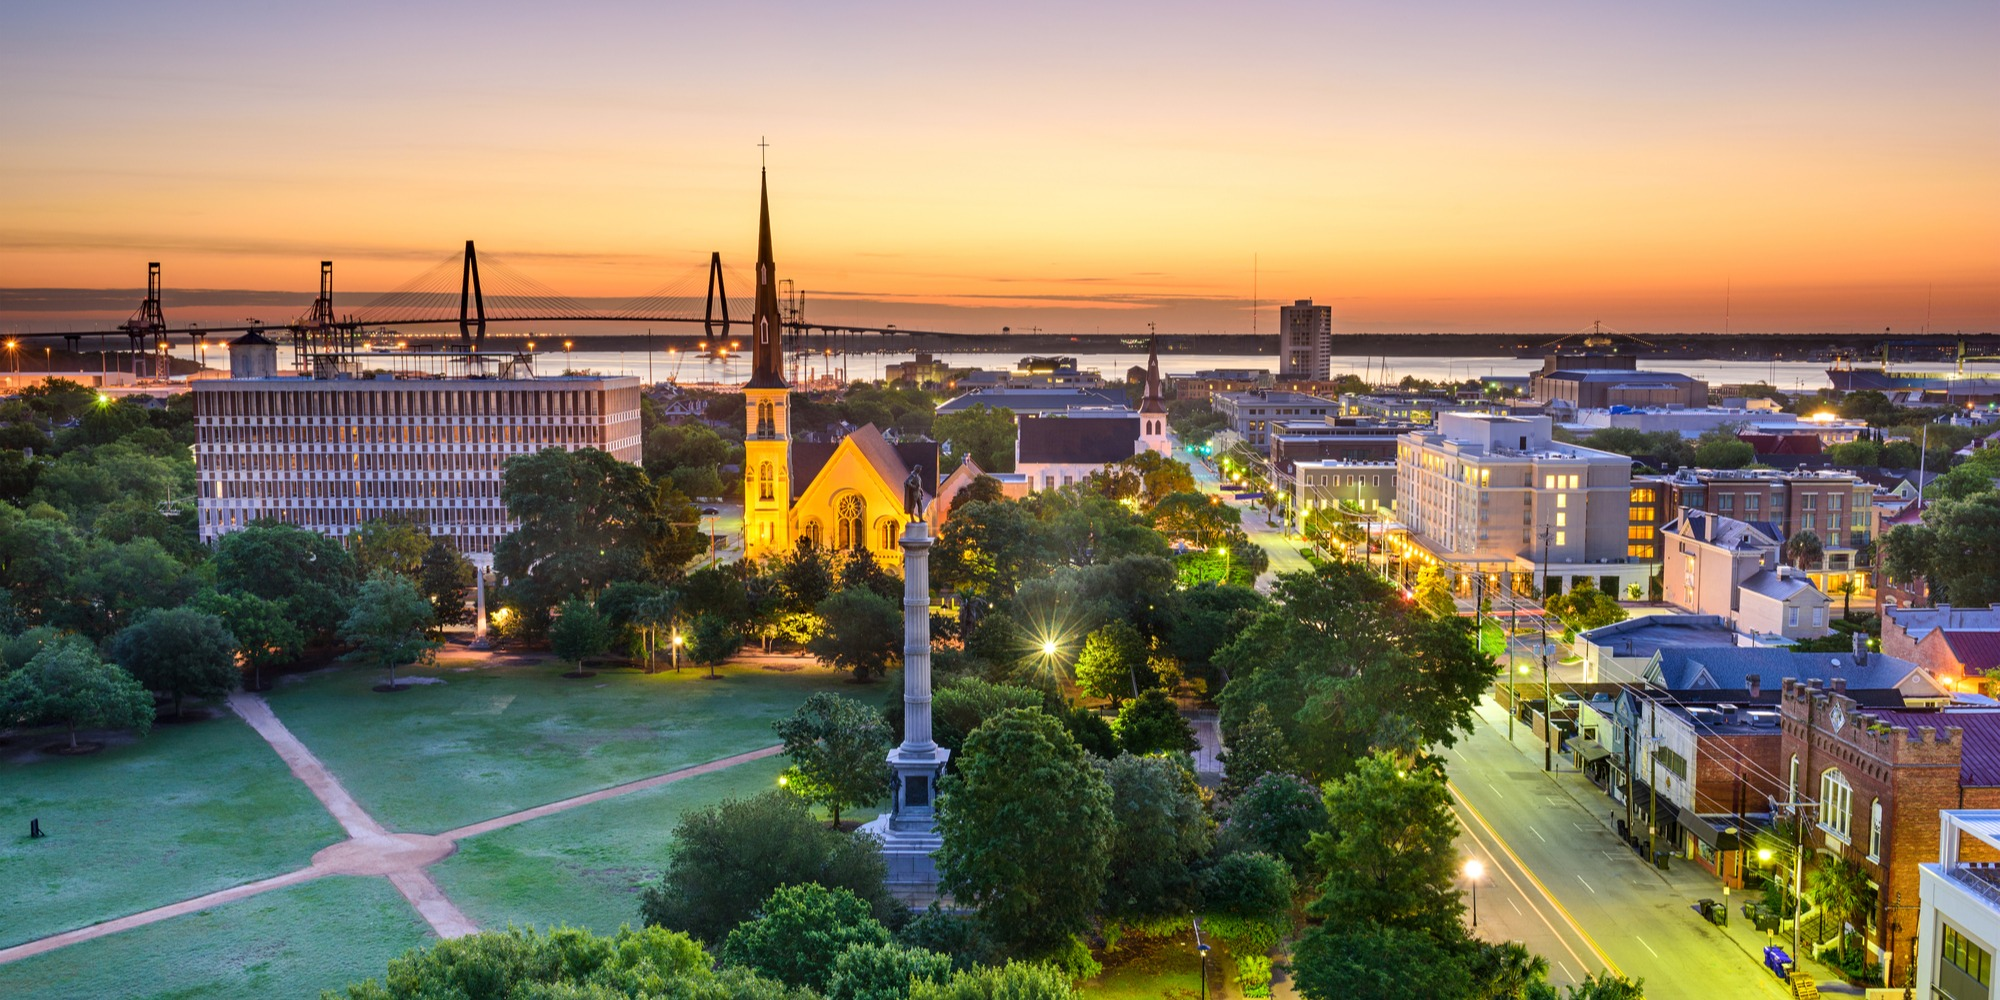 2019 RPWB Litigation Seminar in Charleston, South Carolina